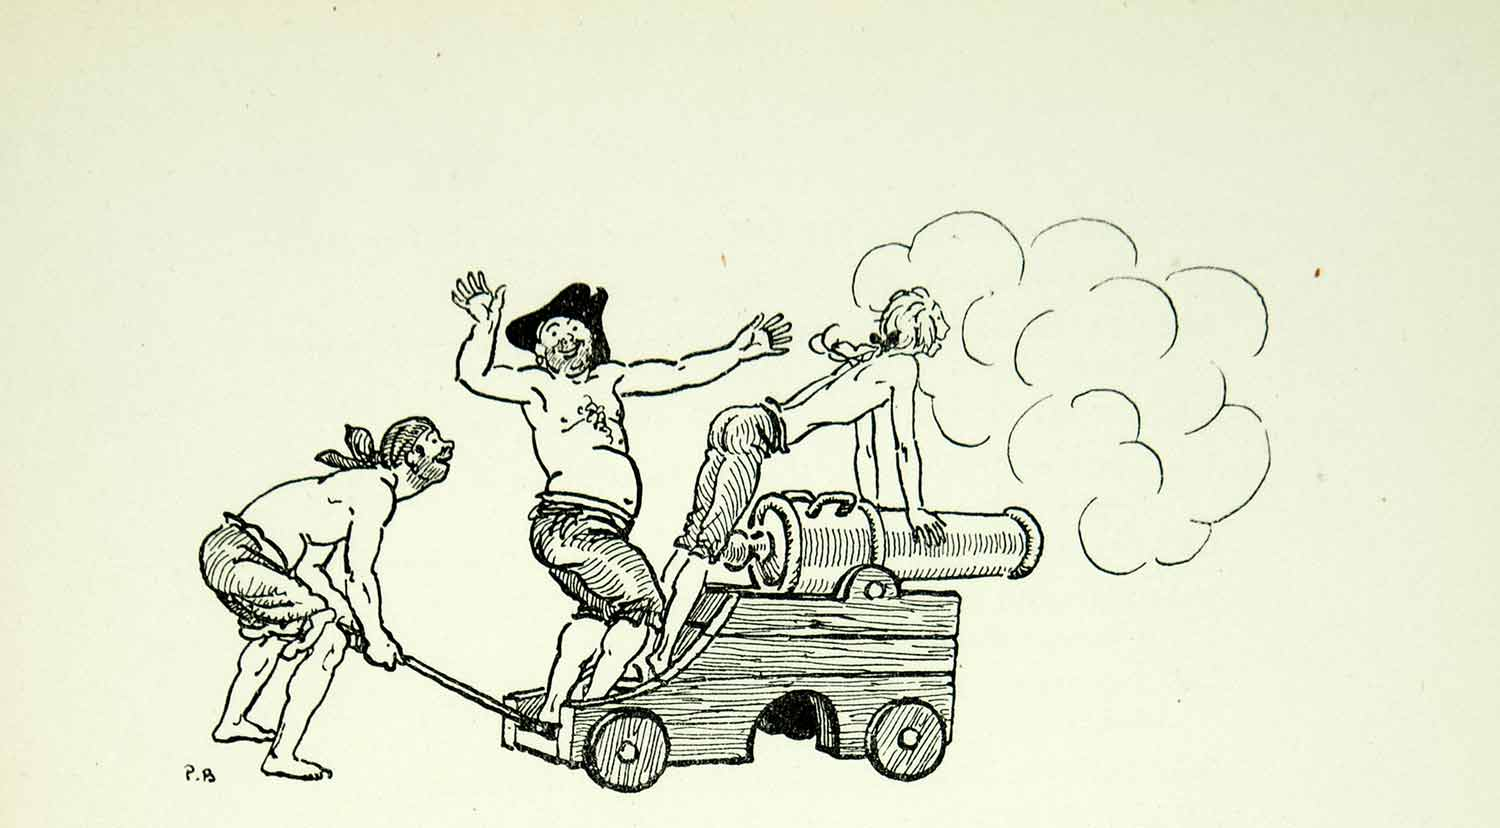 1929 Lithograph Pierrre Brissaud Cannon Fire Firing French Book ADLB2